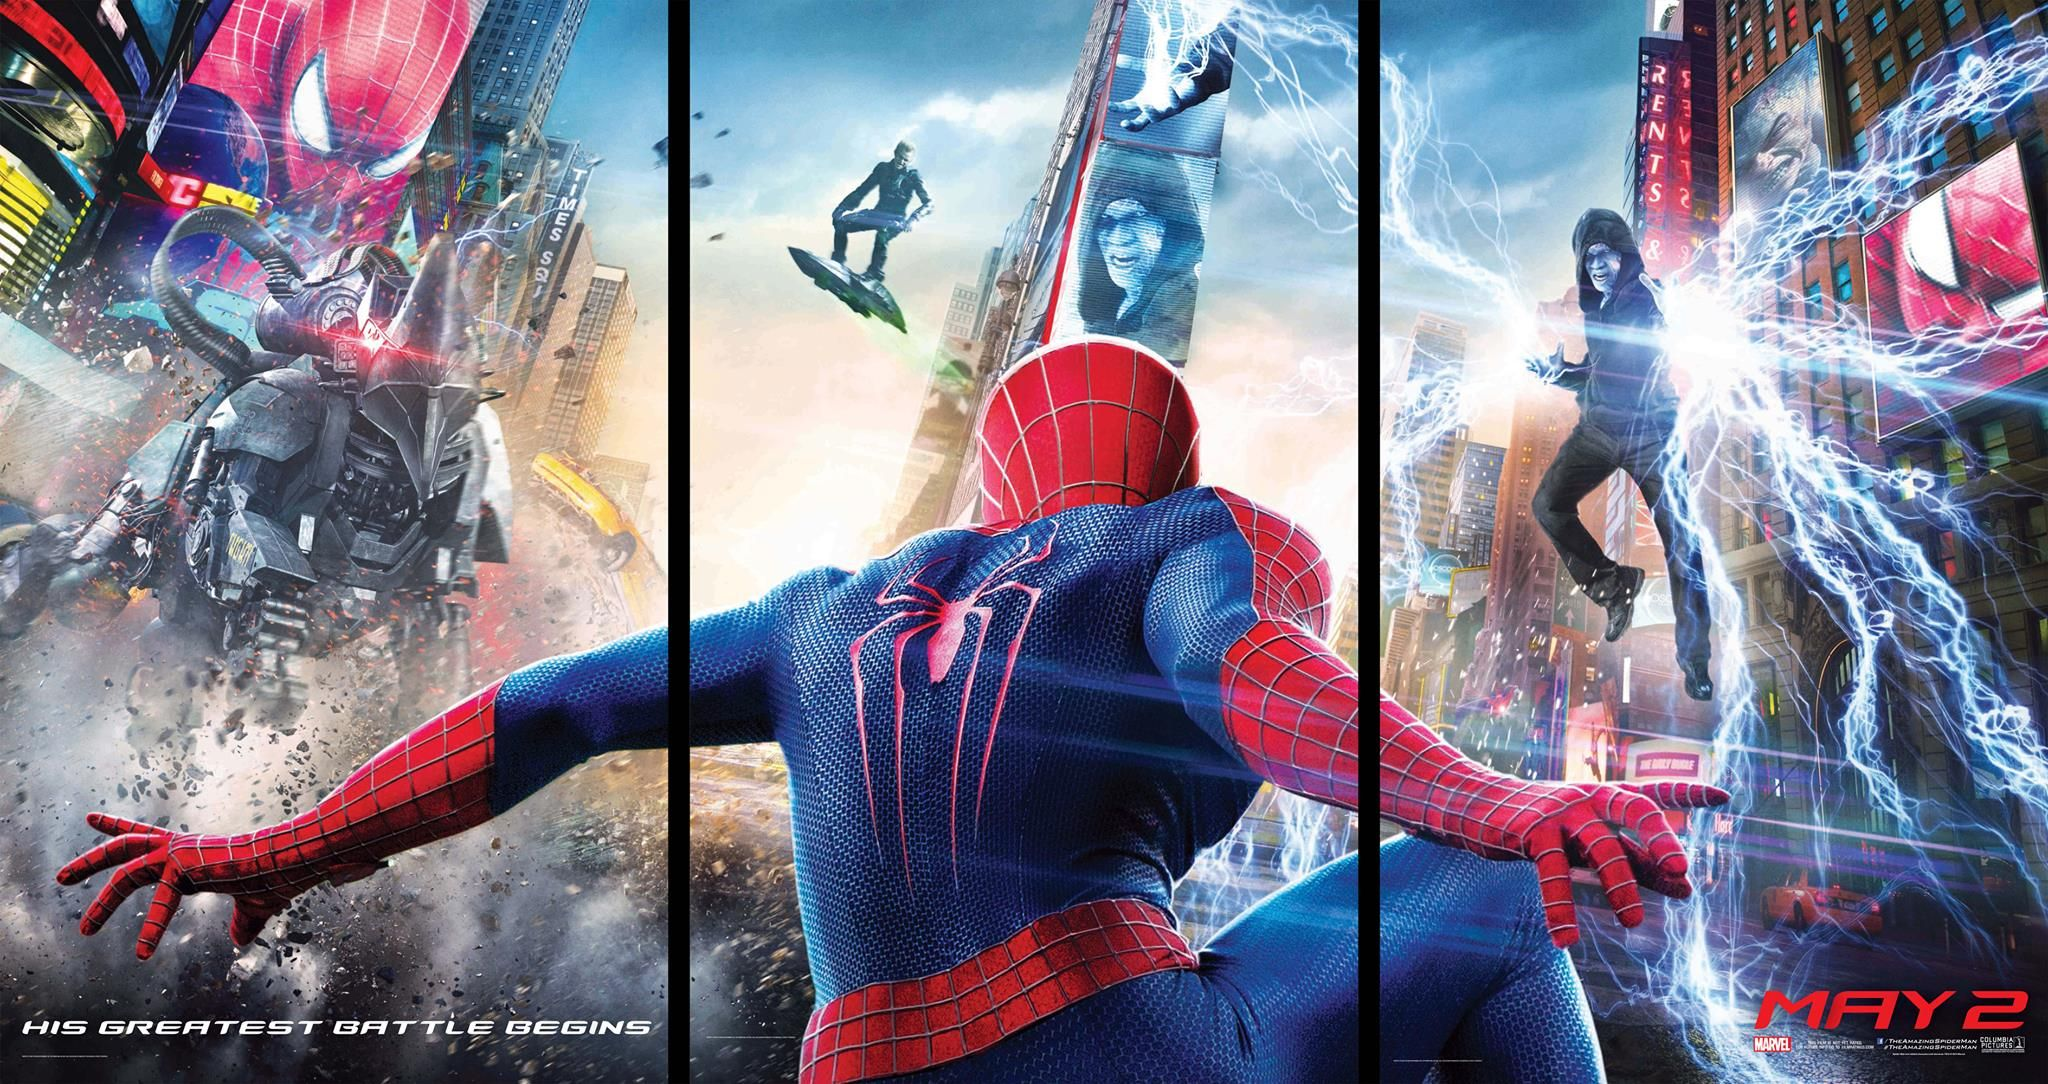 From false advertising to straight up spoilers trailers are ruining the movie experience spider man 2spiderman